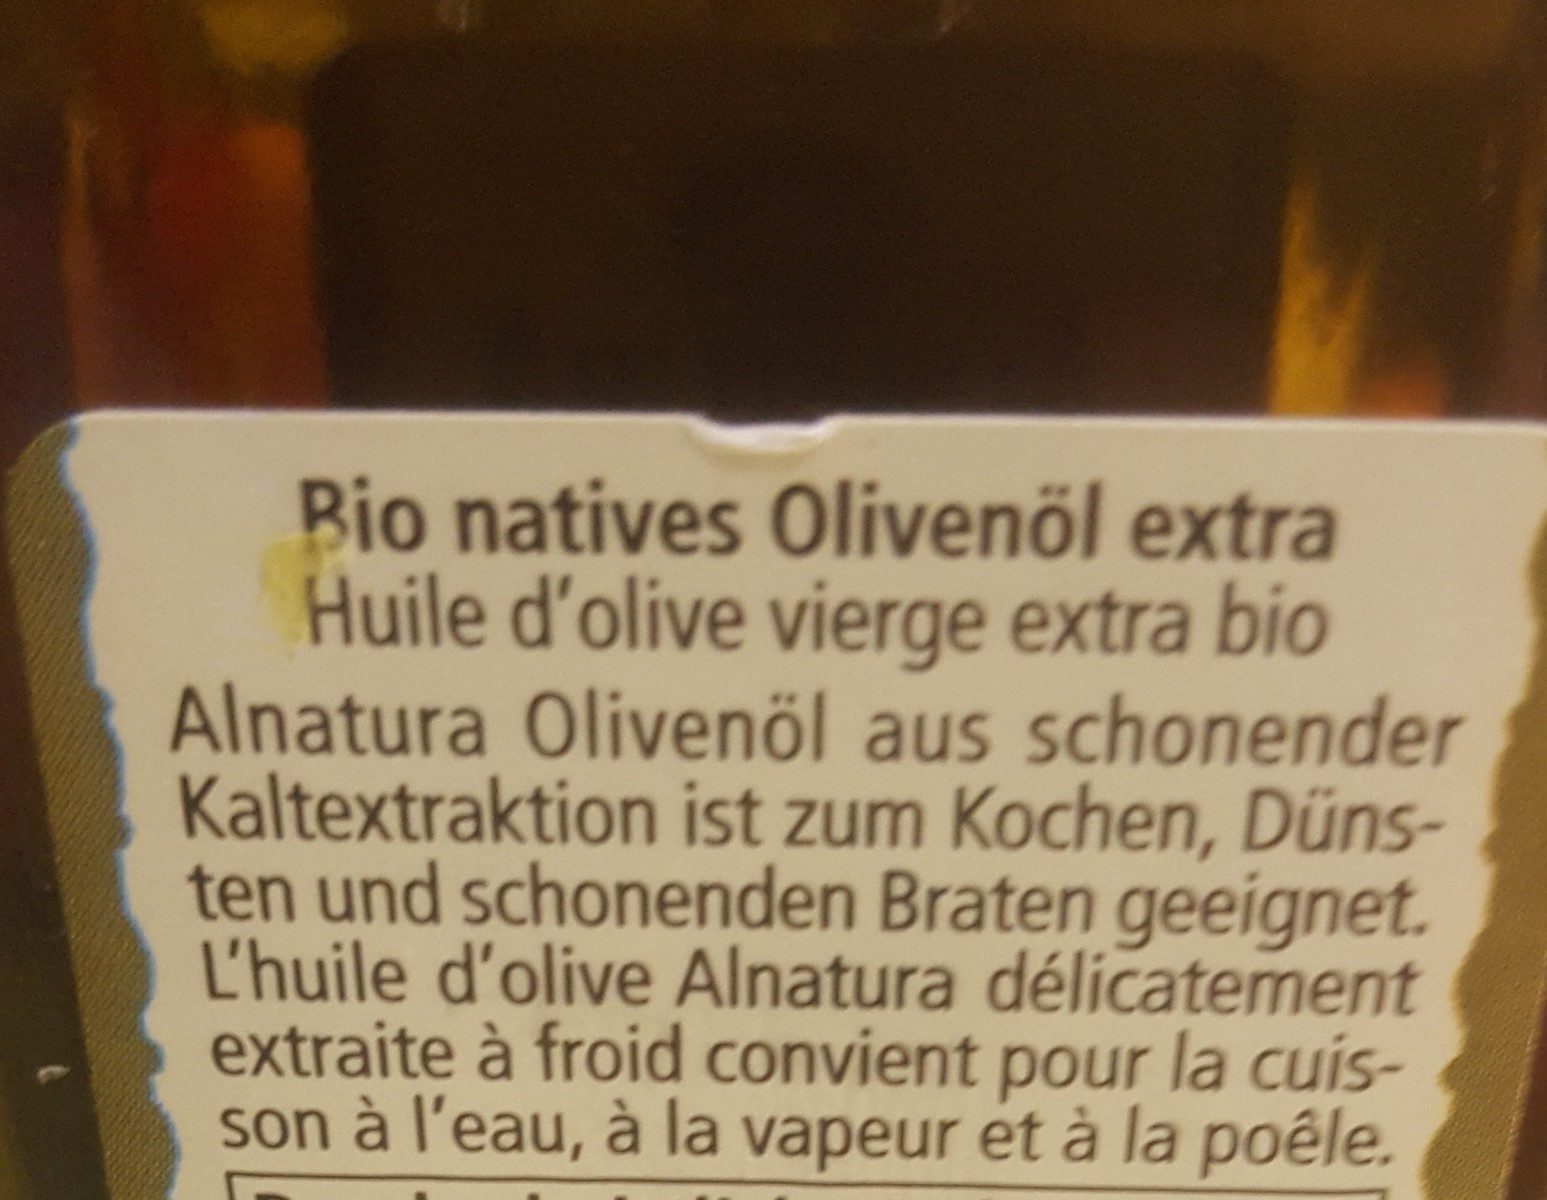 Natives olivenöl extra - Ingredients